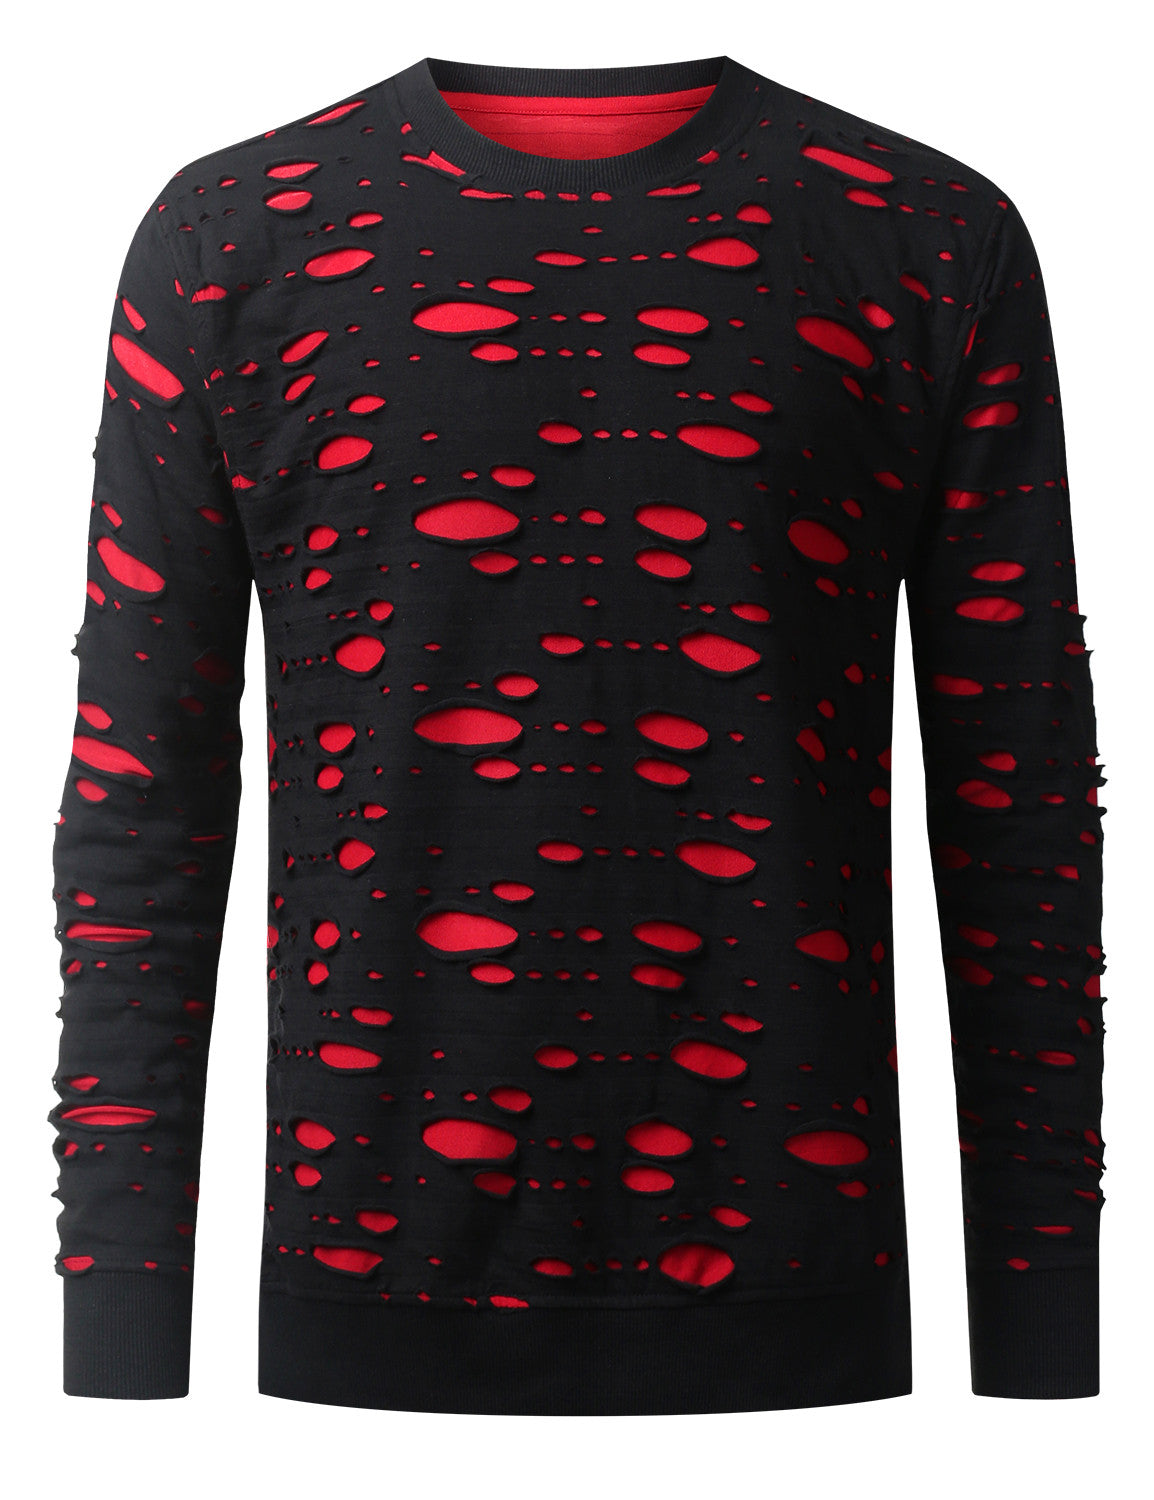 BLACKRED 2 Tone Ripped Long Sleeve Tshirt - URBANCREWS